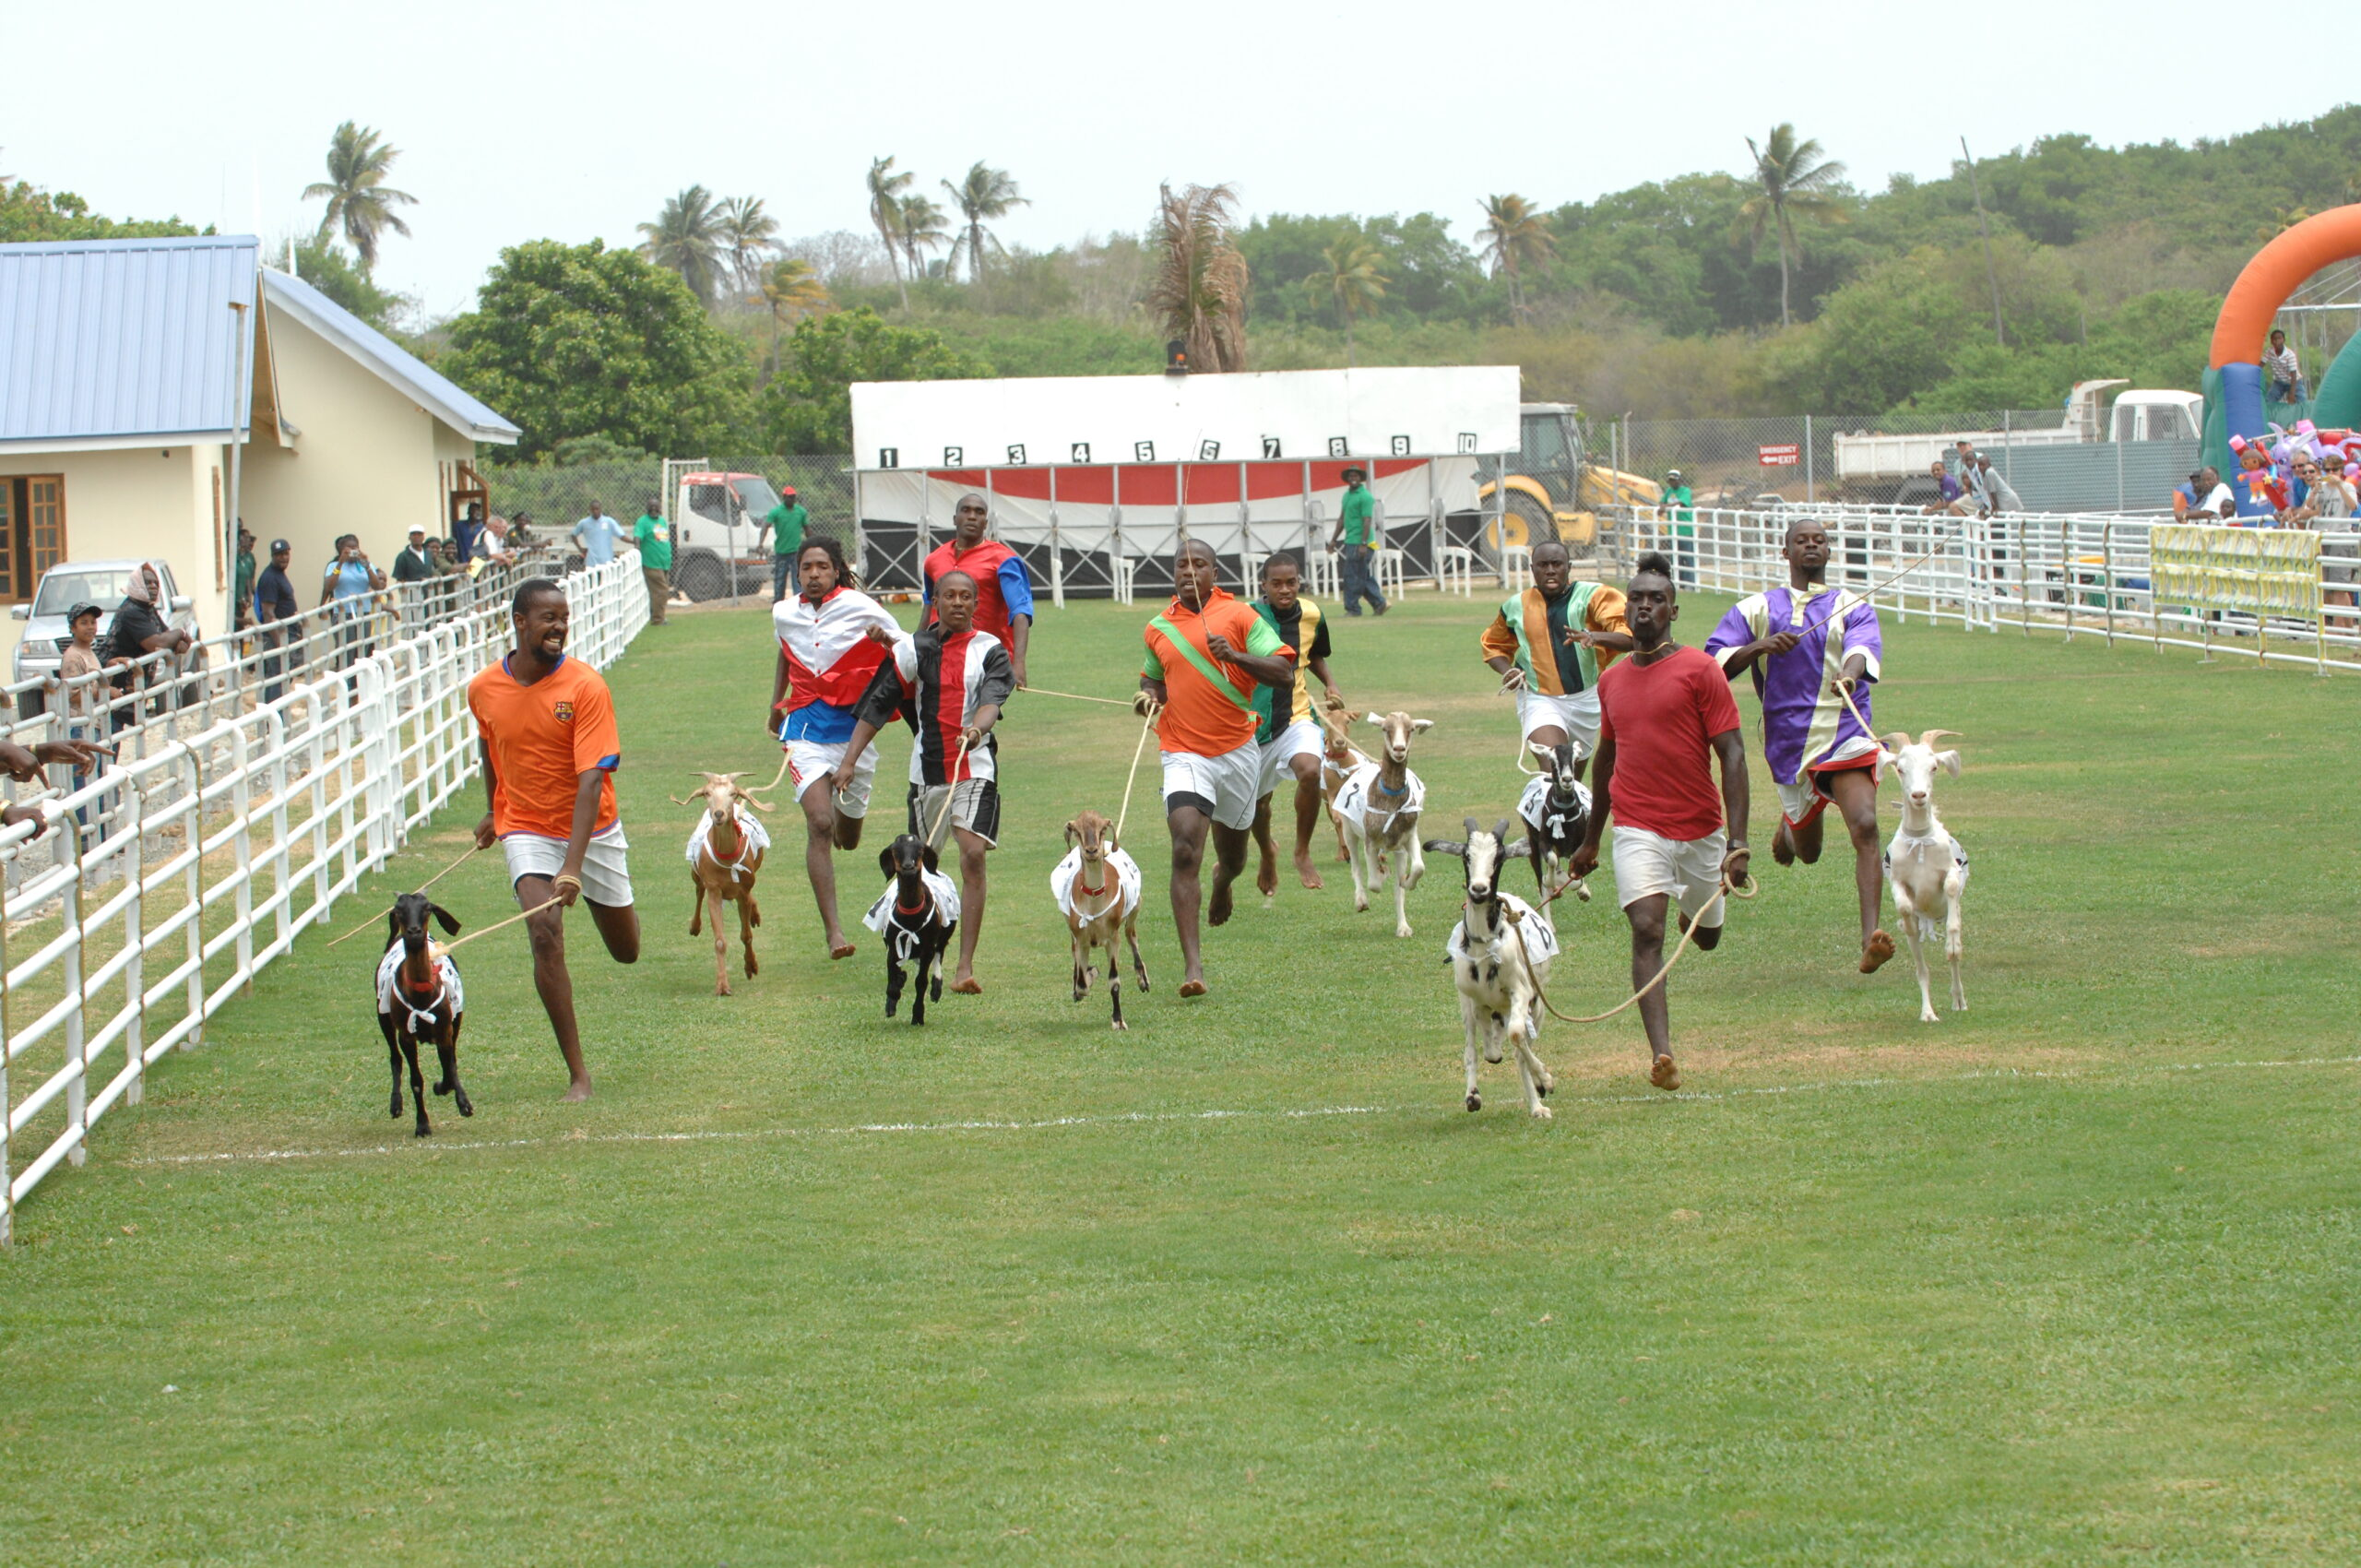 Racing Goats at Buccoo Vliiage, Tobago